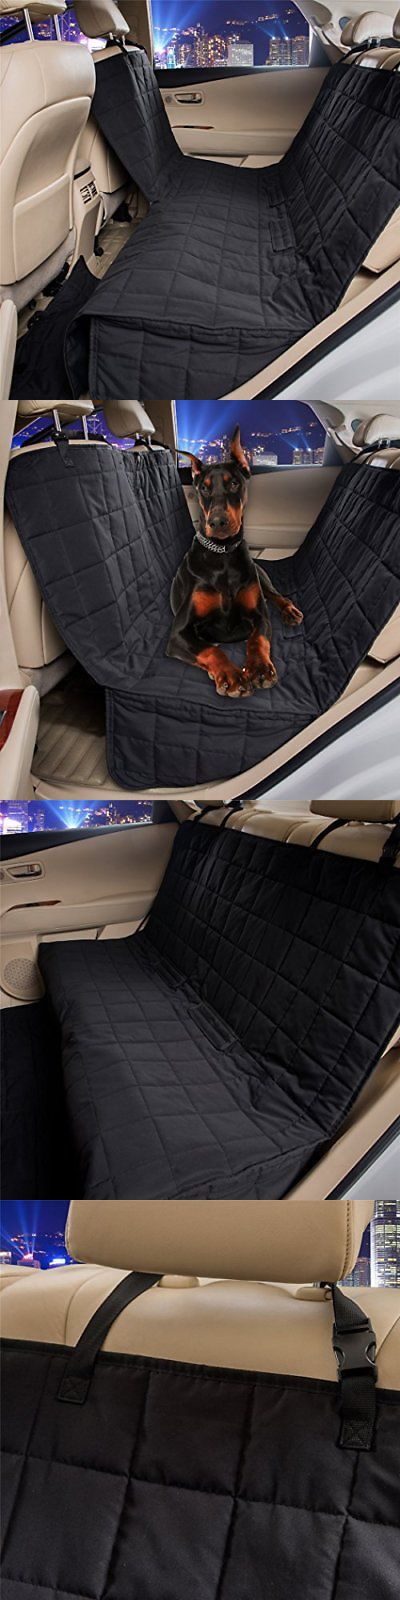 Car Seat Covers 117426: Travel Dog Pet Car Seat Cover Side Protector Comfort Quilted Hammock Bench Suv -> BUY IT NOW ONLY: $44.49 on eBay!